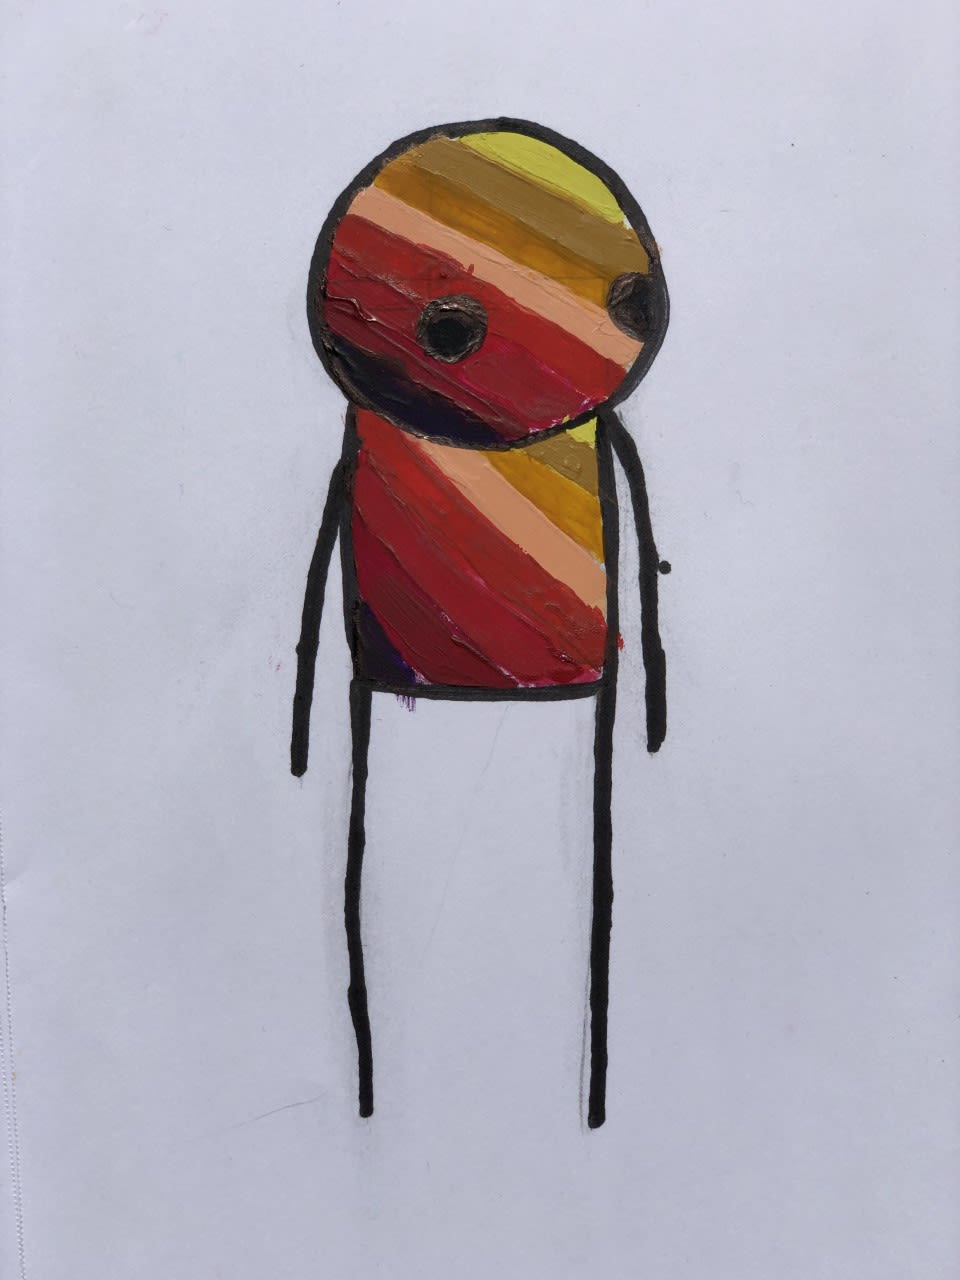 Rudy Dorman, age 9 The artworks that inspired Rudy were Stik's 'Standing Figures' series, in a colour palette influenced by the 'covid' rainbow motif.